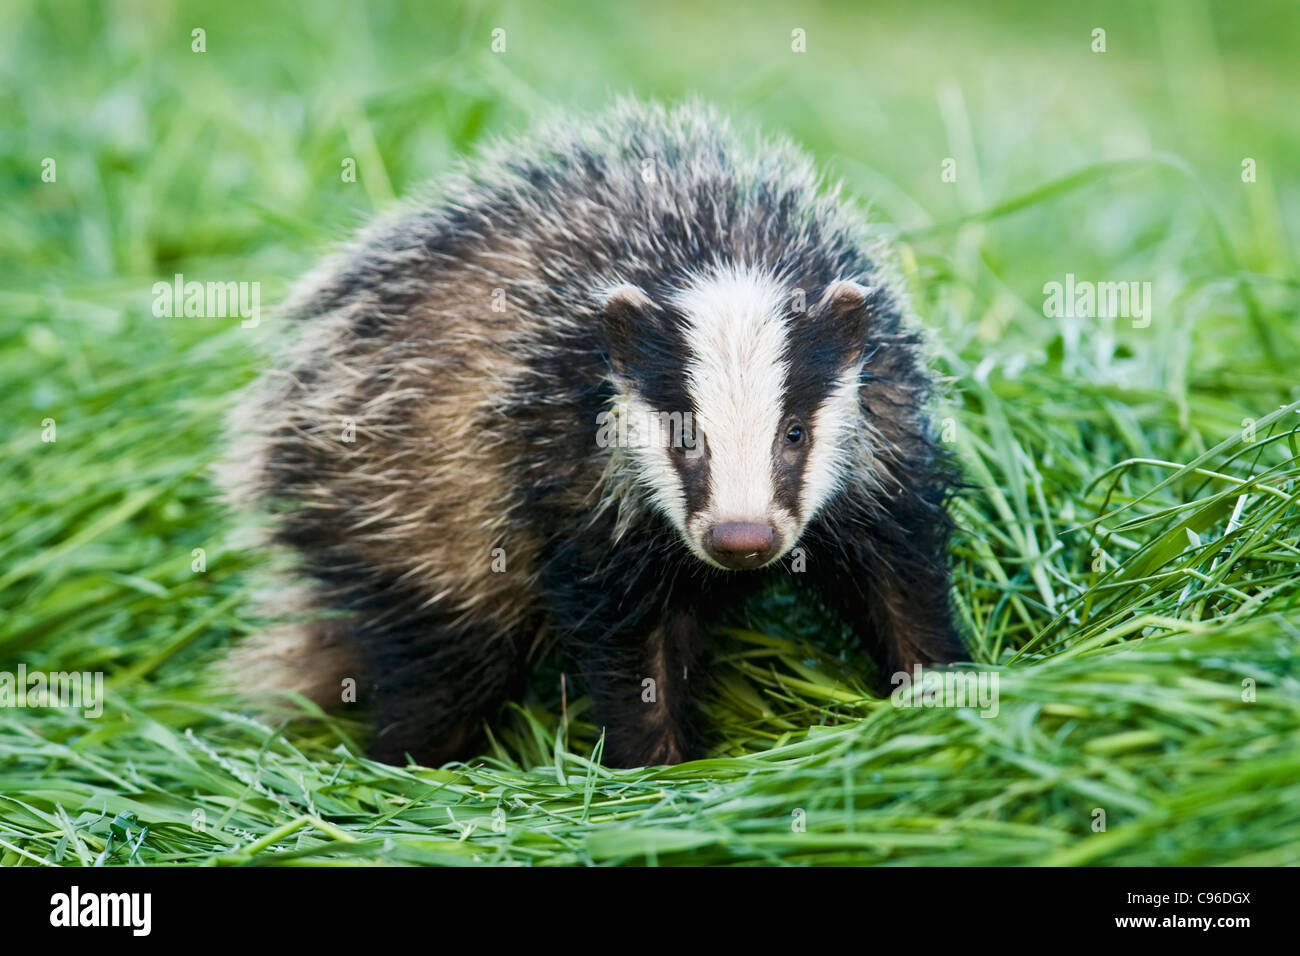 Young badger in hayfield - Stock Image